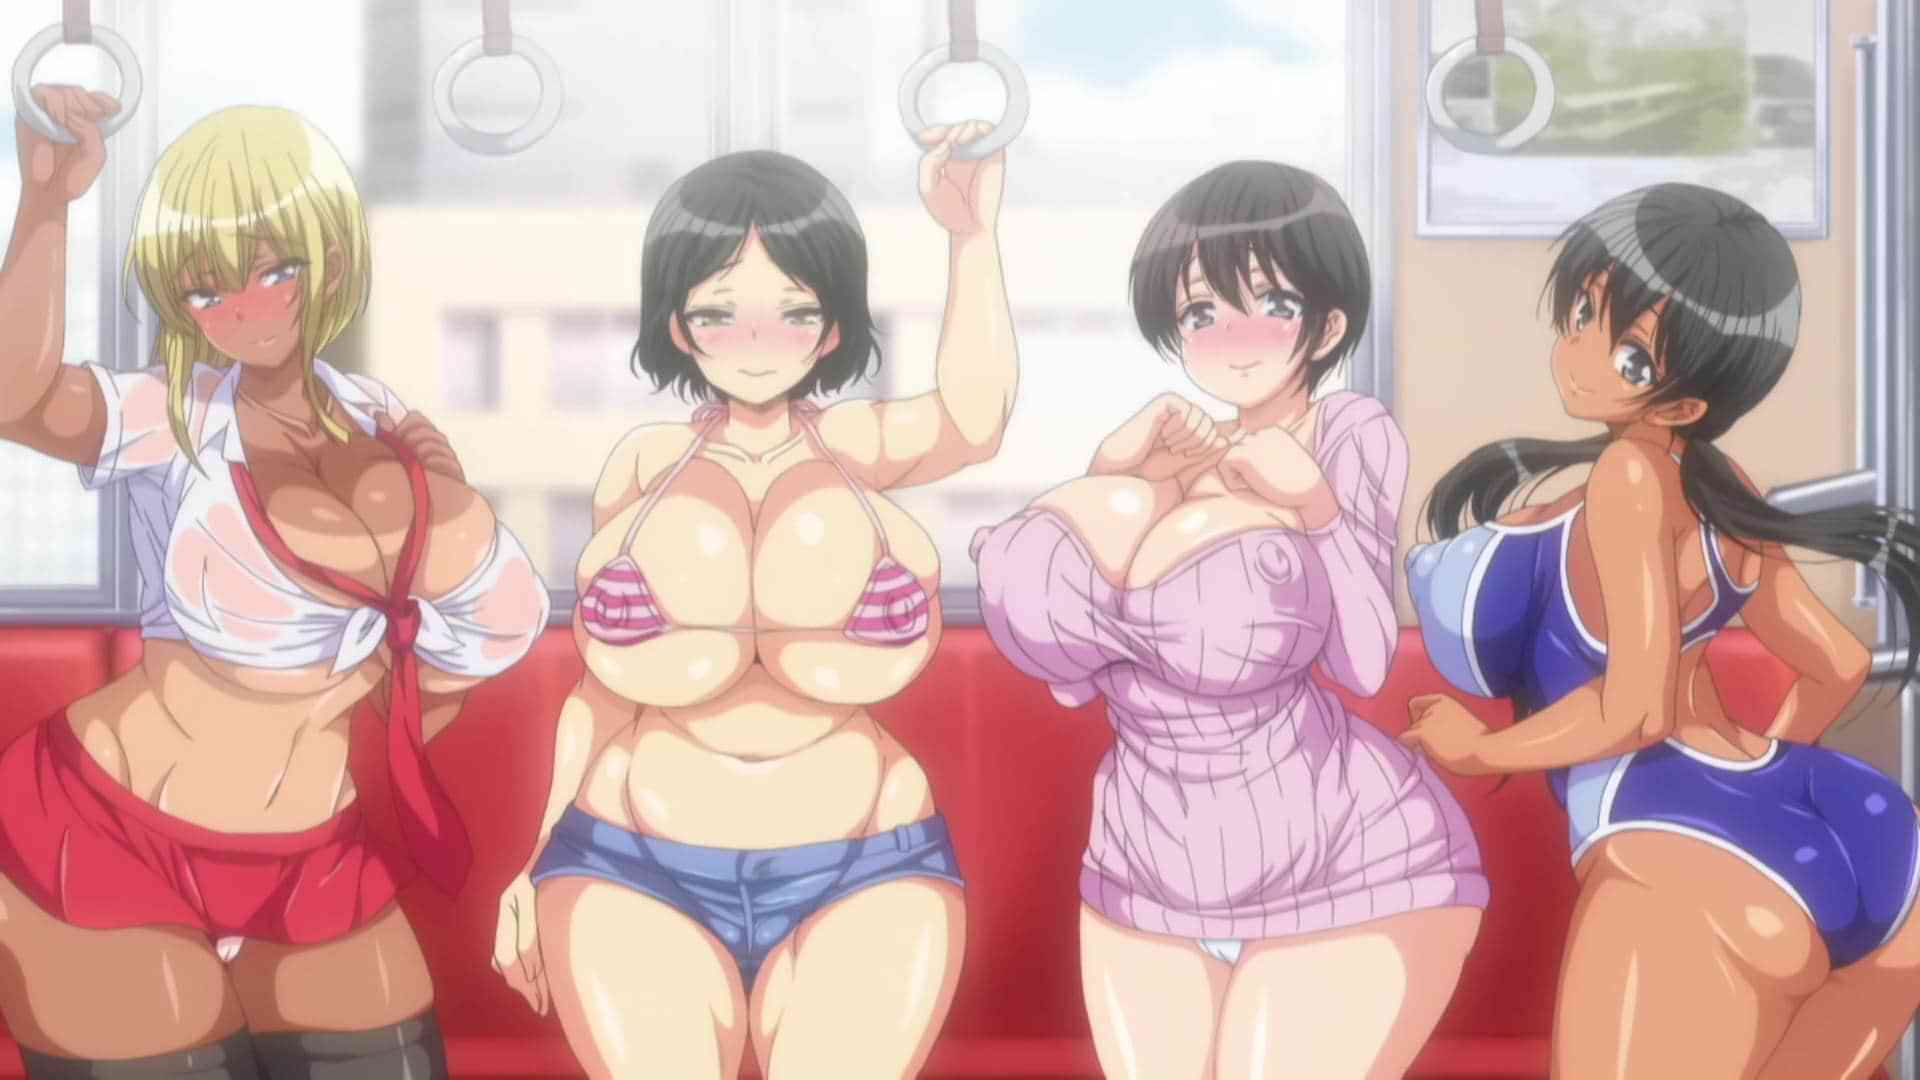 Bangable Girl! Train Sex Episode 2 [Sub-ENG]